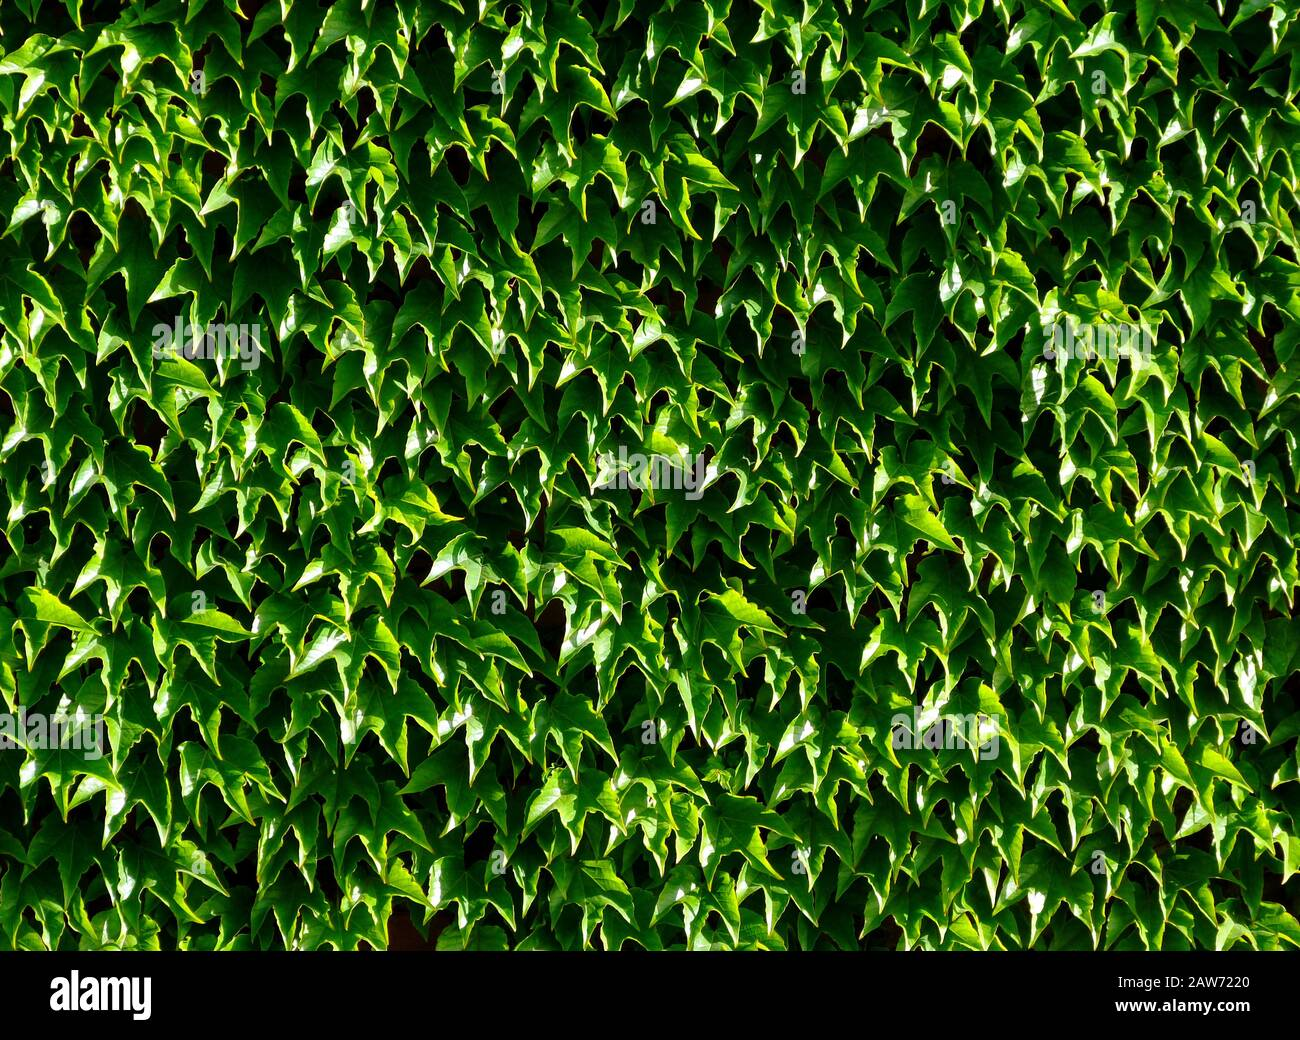 dense green Boston Ivy waxy leaves with dense foliage in bright light. white reflections. background image. freshness and outdoors concept. nature. Stock Photo